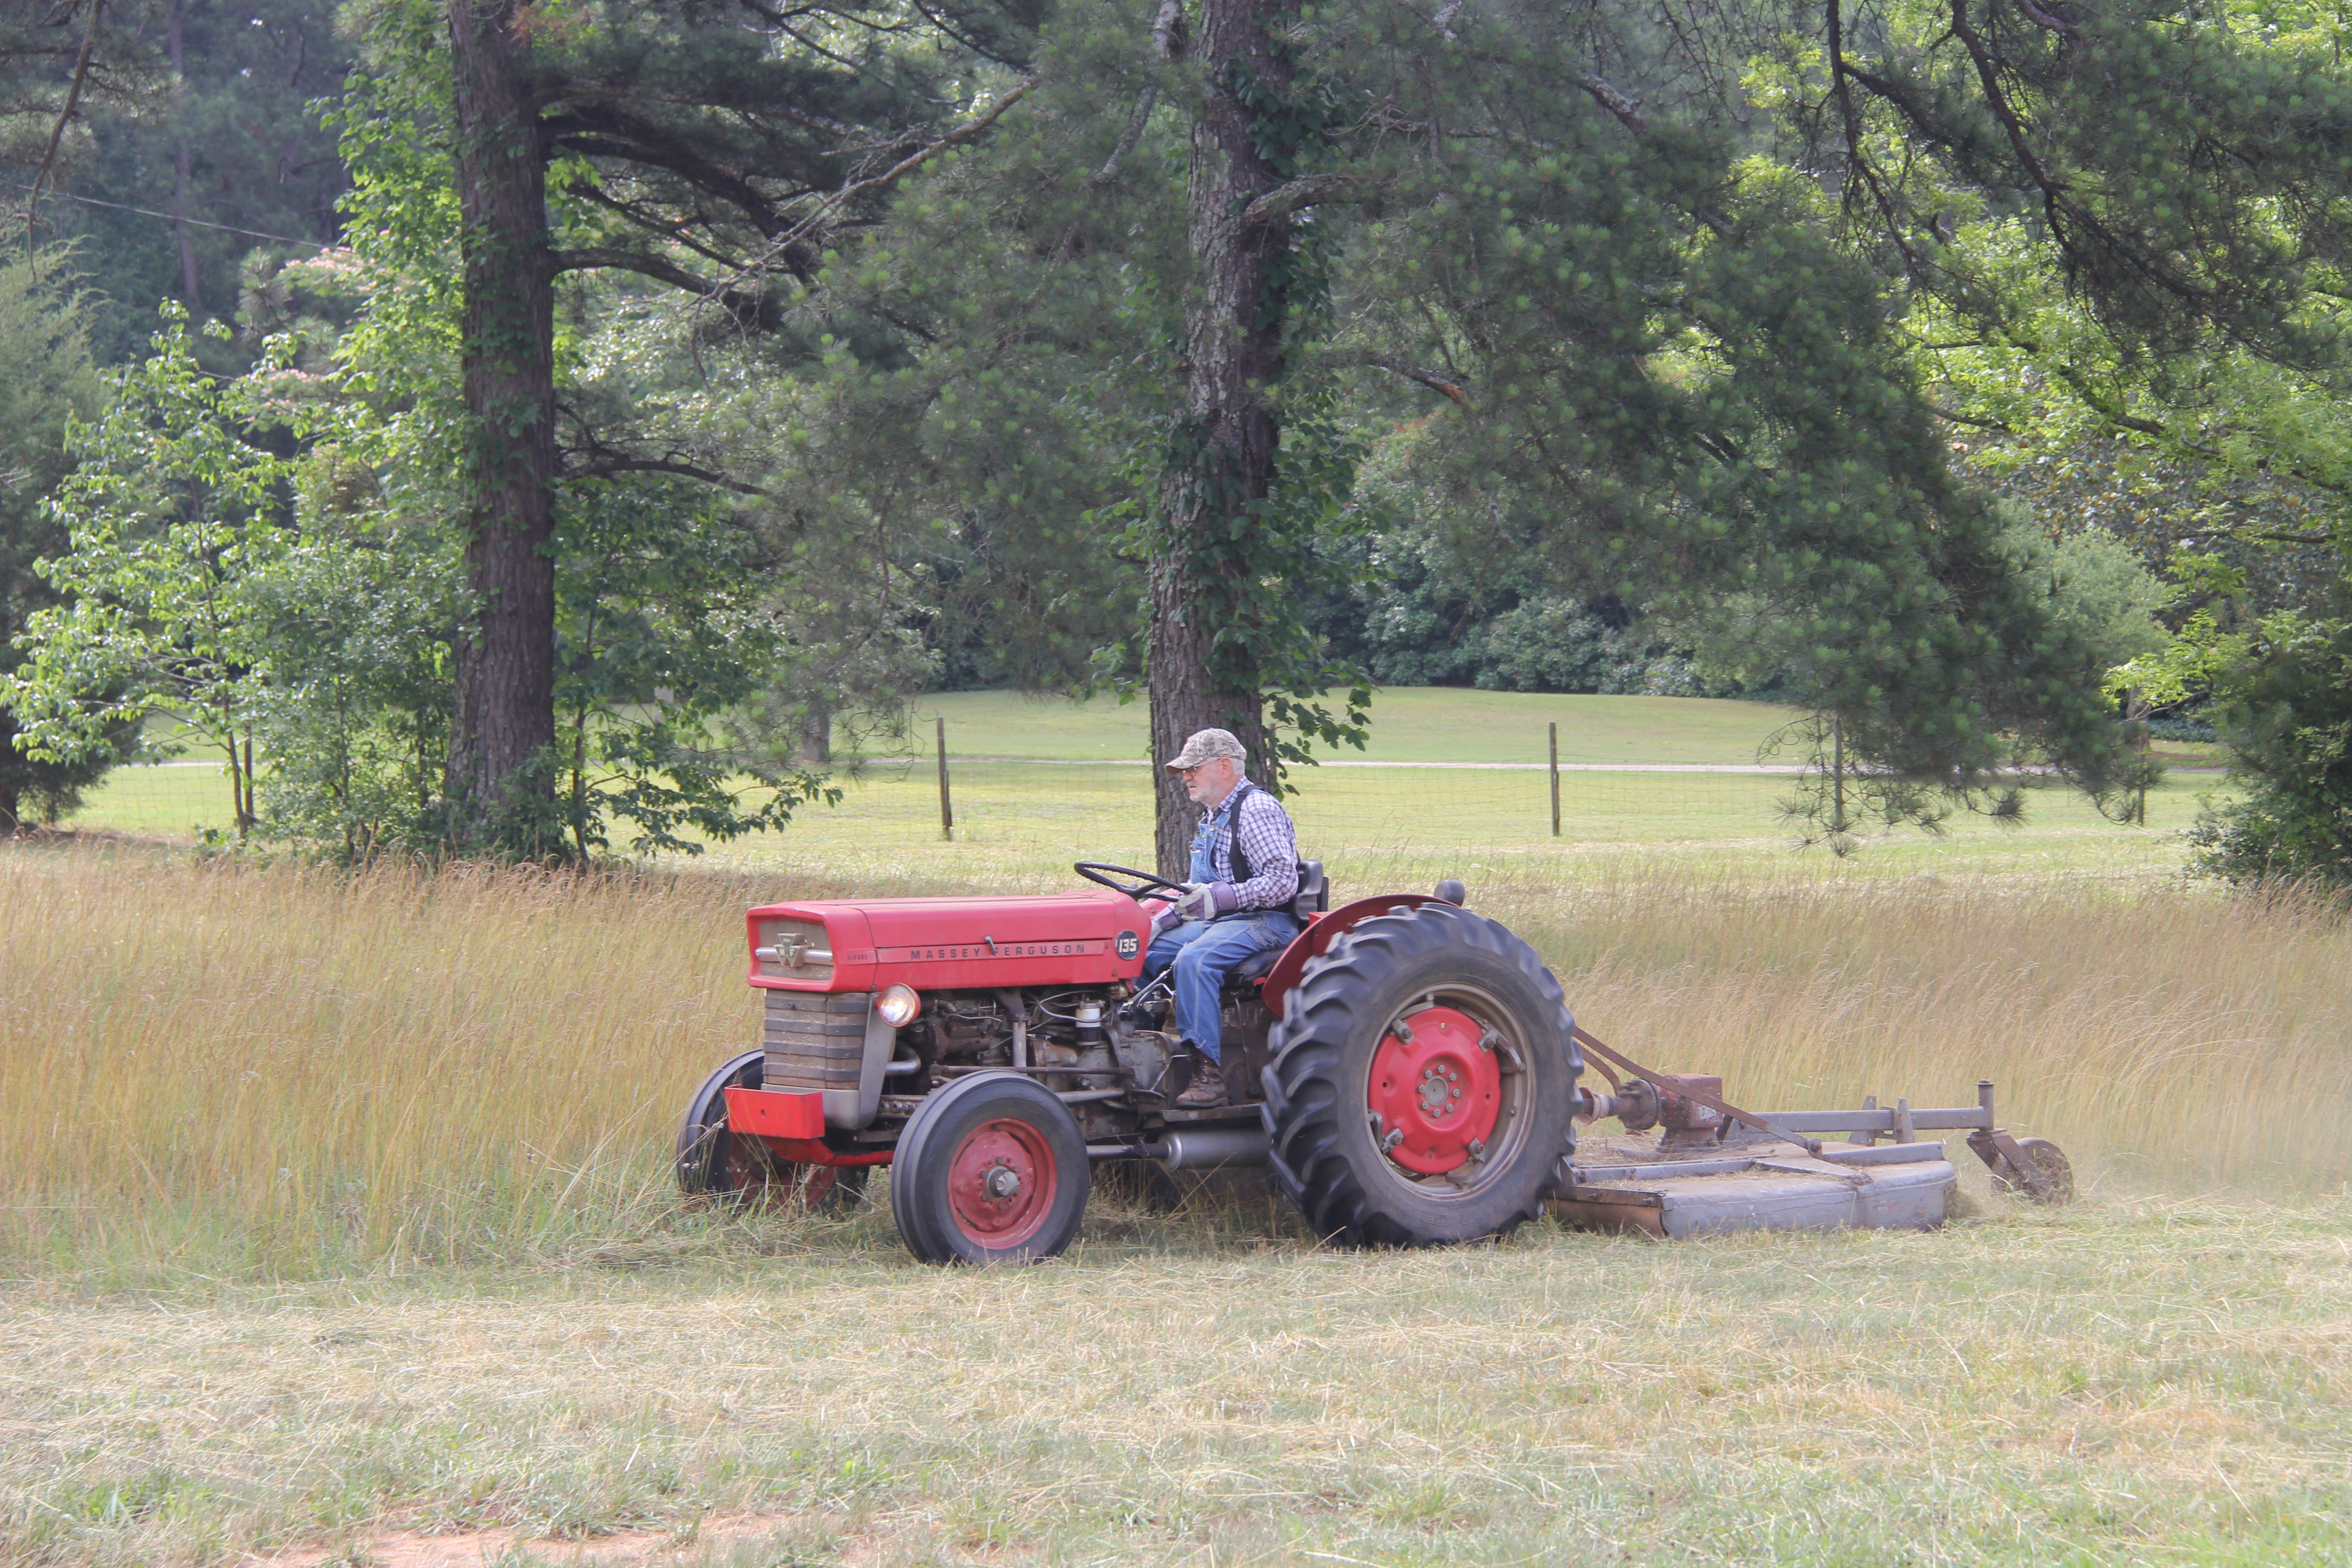 If hay is ready for harvesting, mowing is one way to control armyworms.